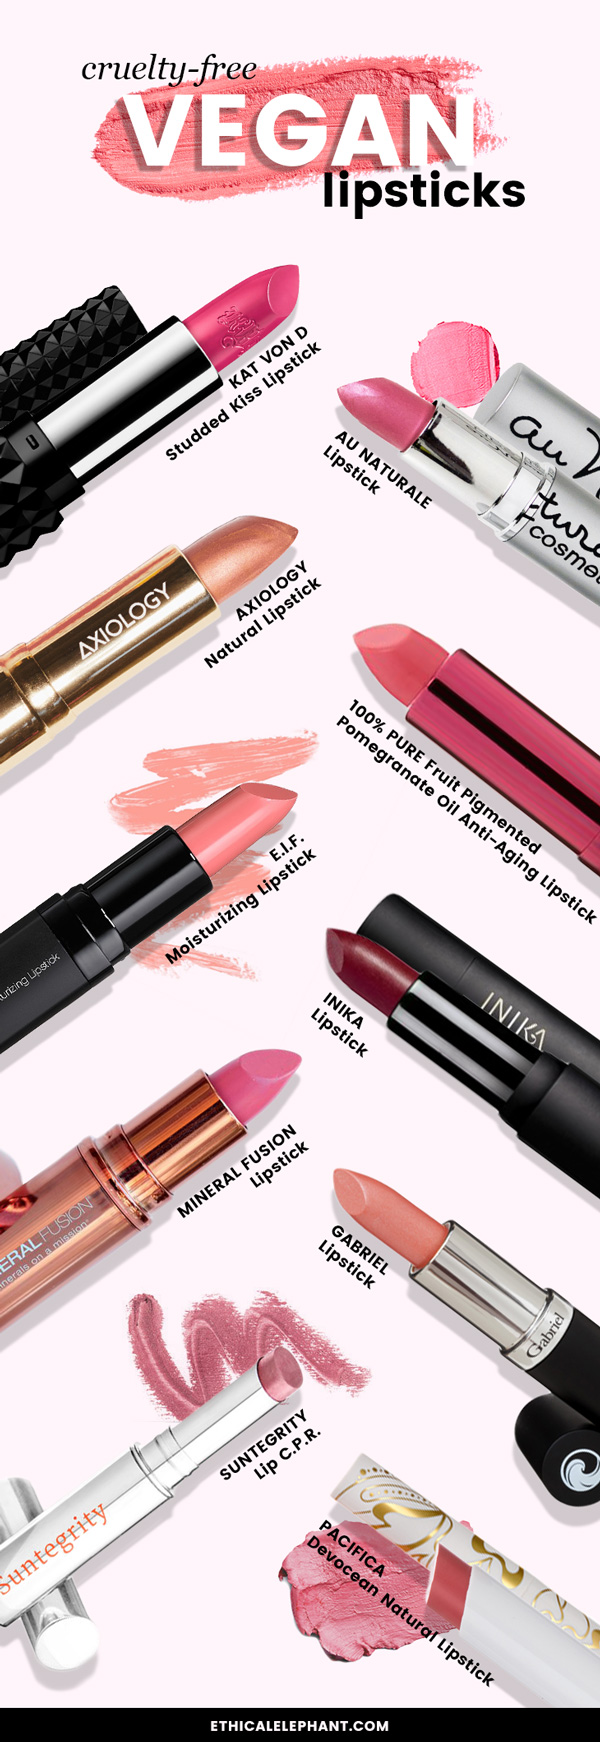 The Best Cruelty-Free and Vegan Lipsticks